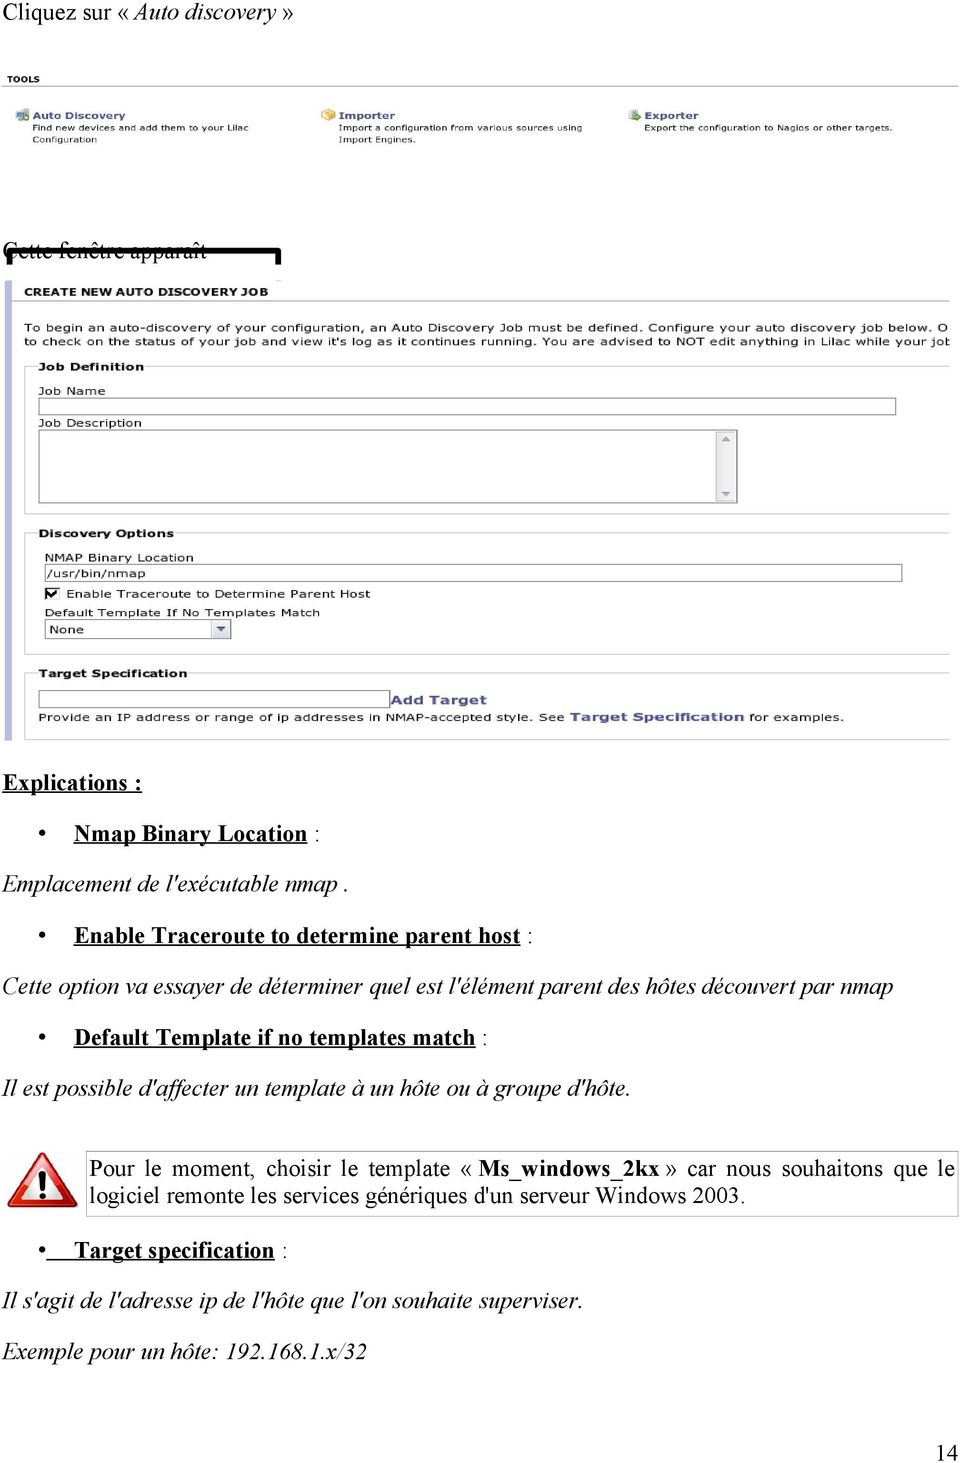 templates match : Il est possible d'affecter un template à un hôte ou à groupe d'hôte.